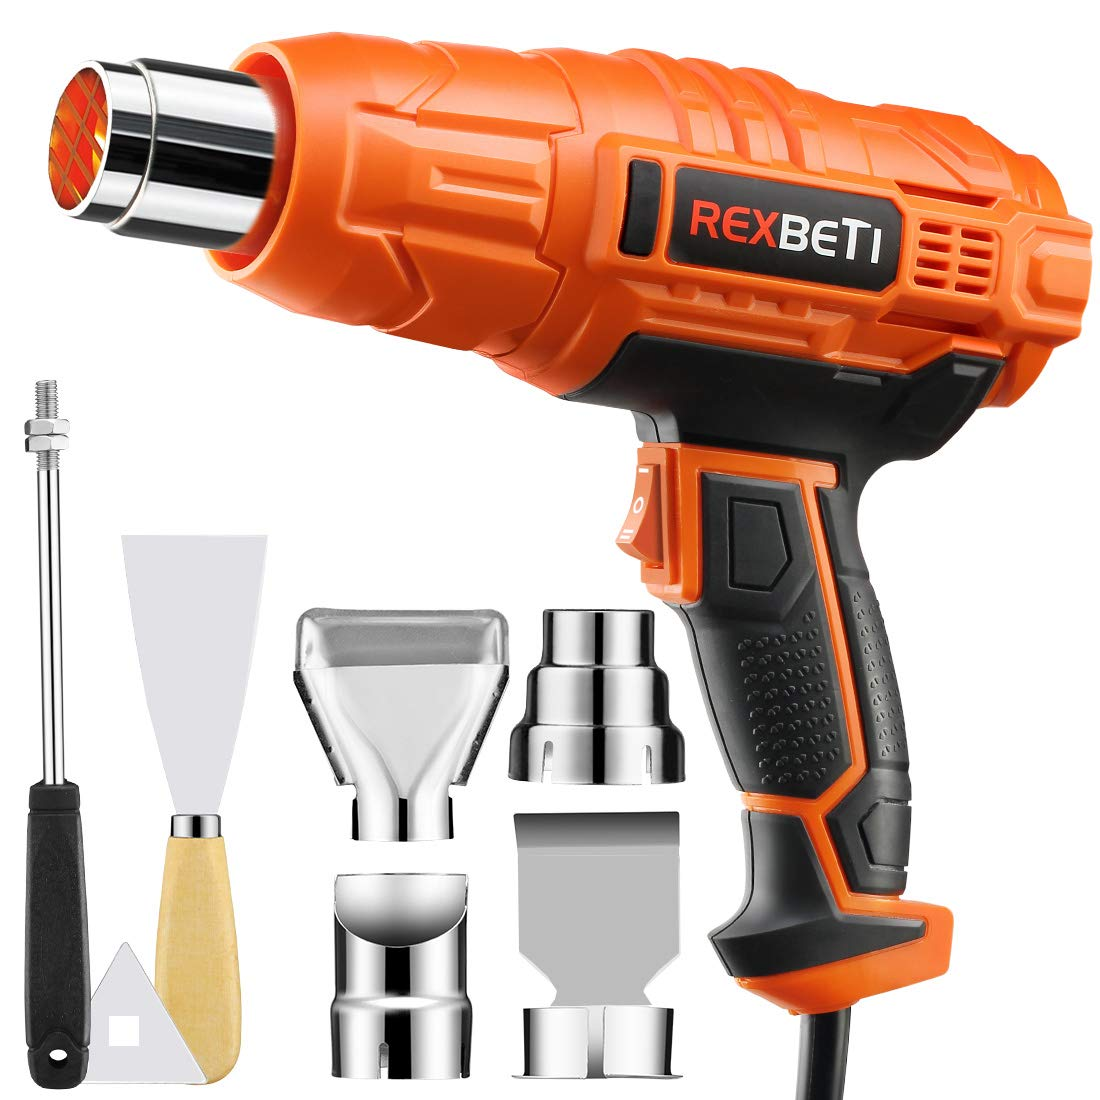 REXBETI Dual Temperature Heat Gun with 7 Multi-purpose Attachments, Max Temperature up to 1210°F, High Power Hot Air Gun with Overload Protection, Perfect for Crafts, Shrinking PVC, Stripping Paint